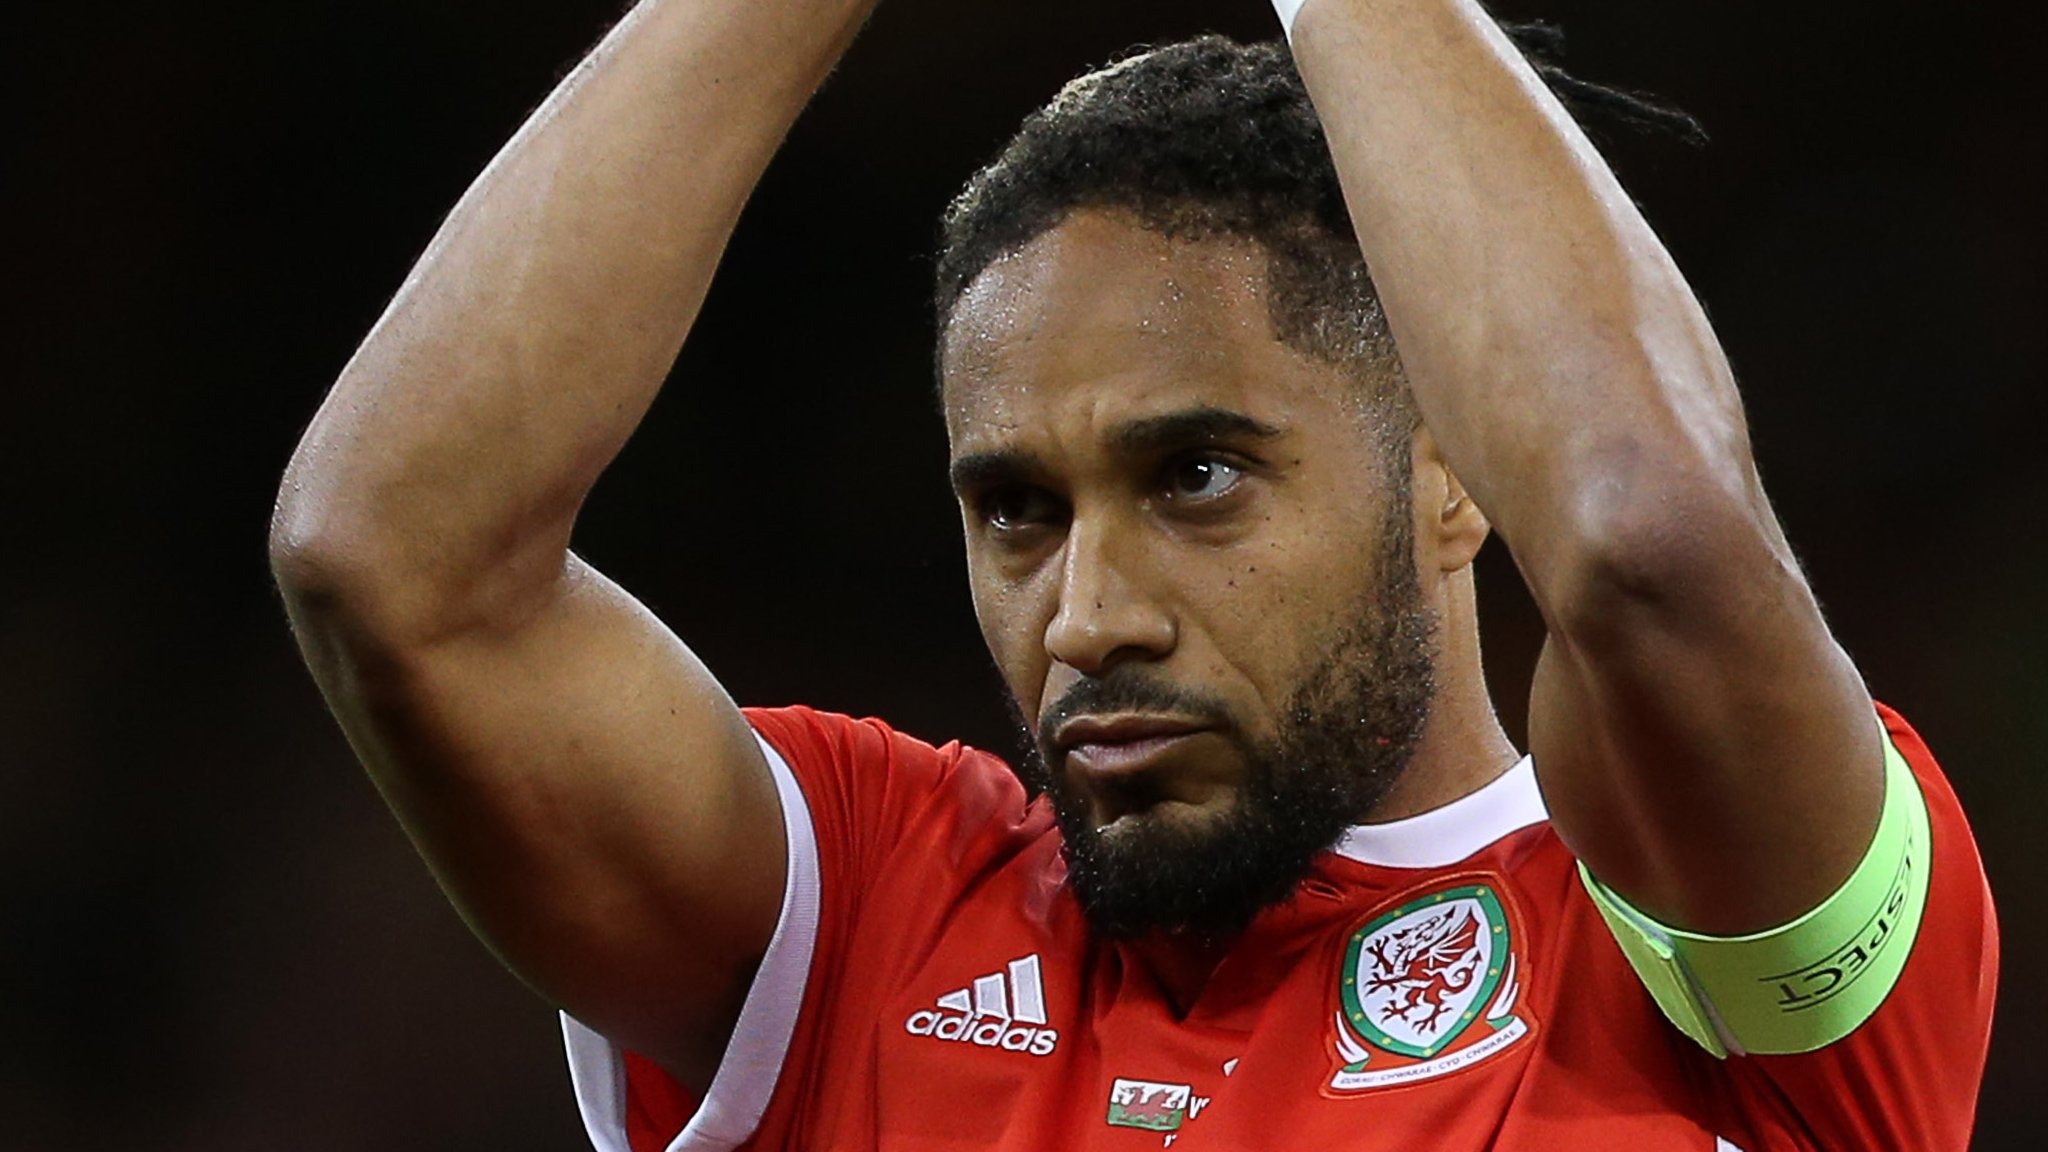 Williams relishing Wales' 'special' Denmark decider